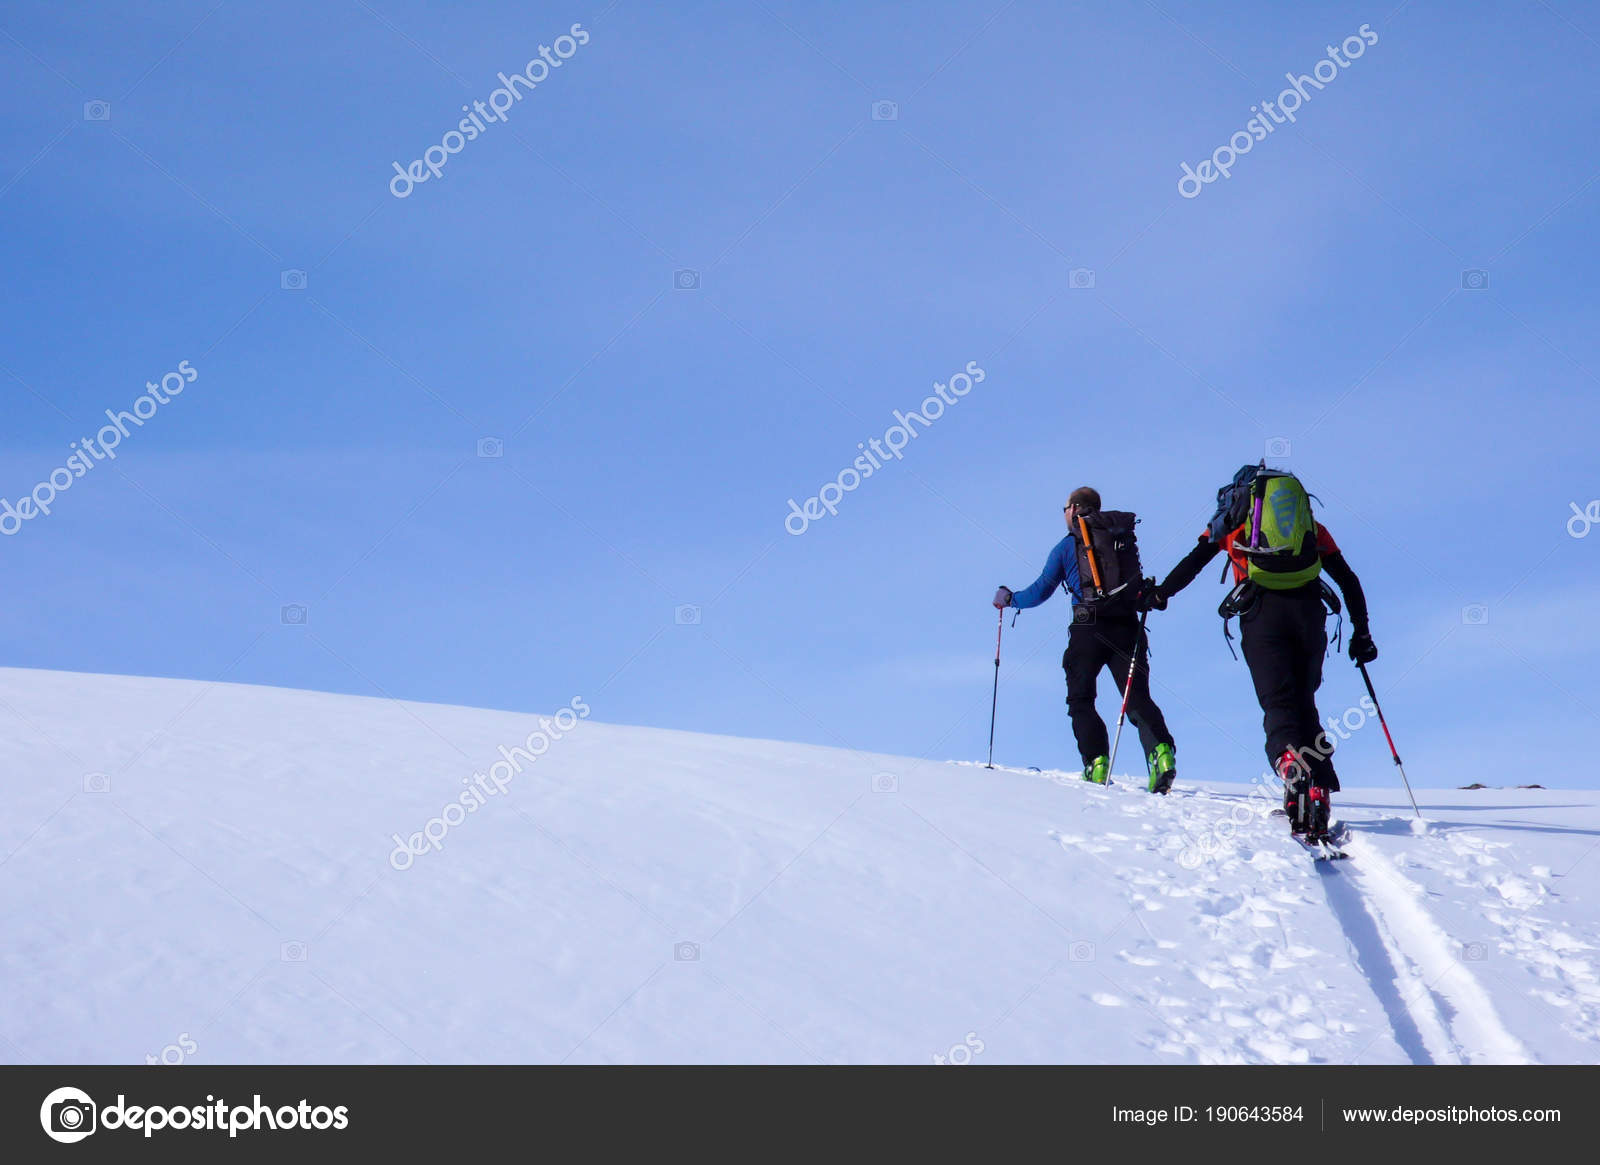 mountain guide backcountry ski tour leading client peak high alpine rh depositphotos com Alpine Touring Package Alpine Snowboarding